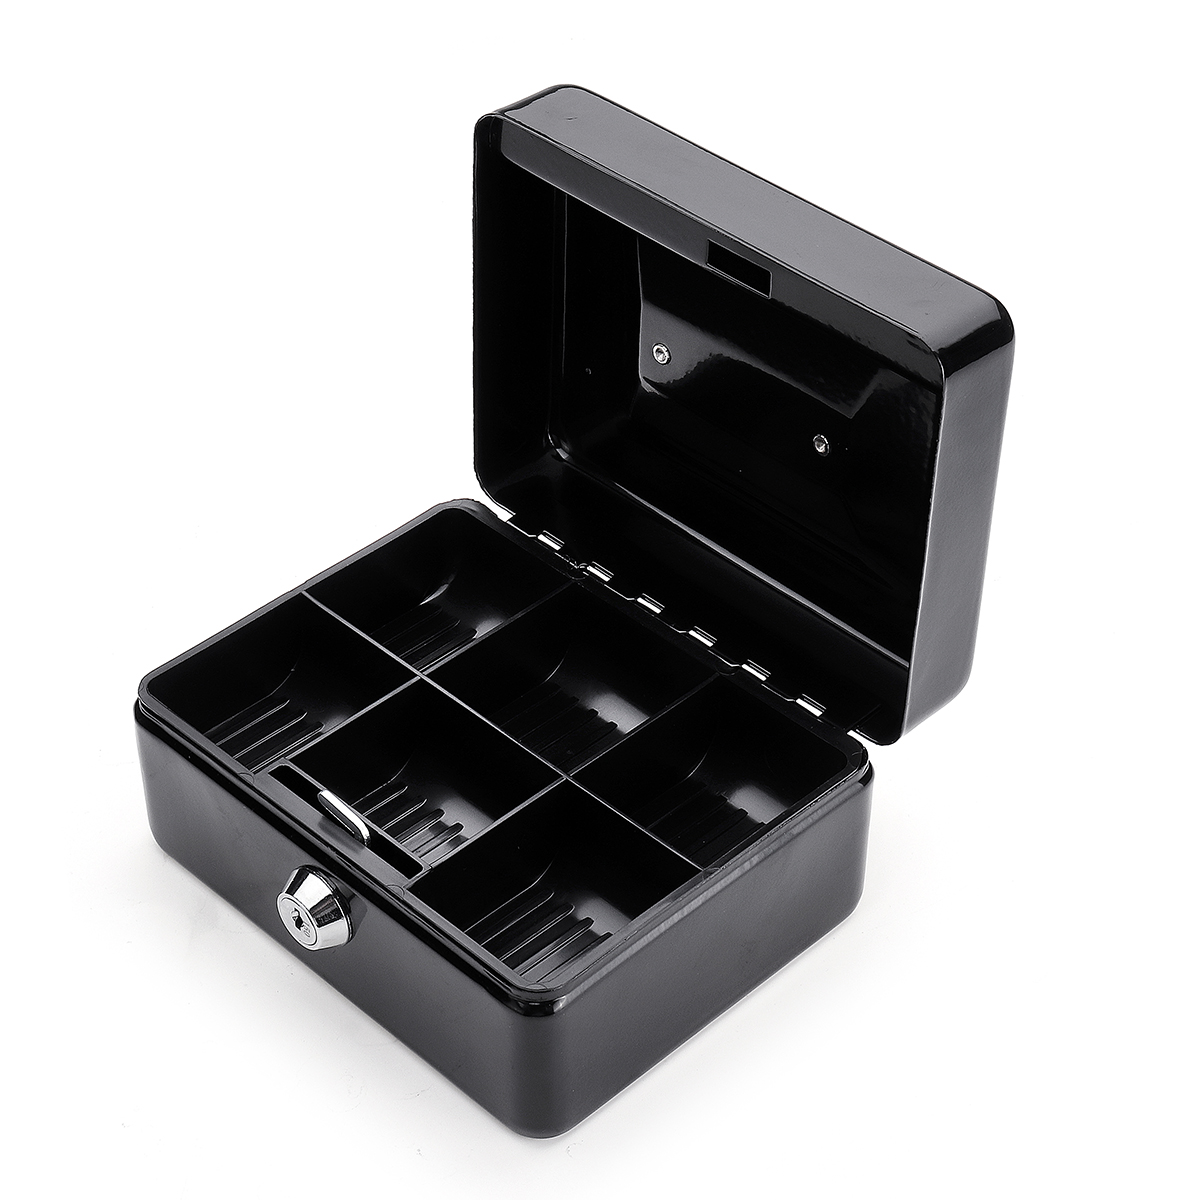 Mini Portable Money Safe Storage Case Black Sturdy Metal With Coin Tray Cash Carry Box